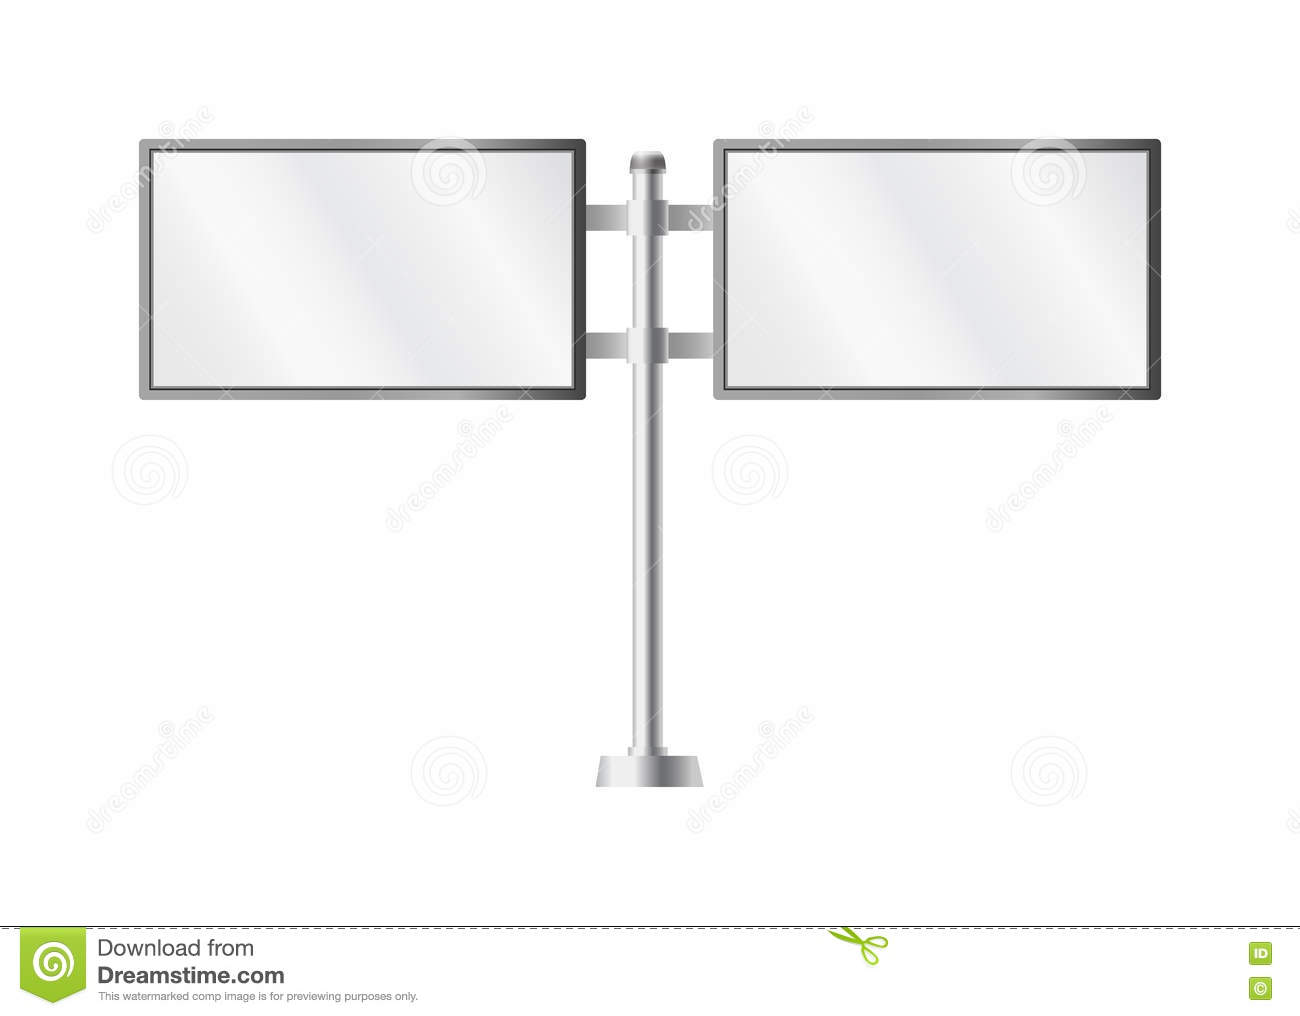 blank billboards and outdoor advertisement templates isolated pillar ad illustration stock photo